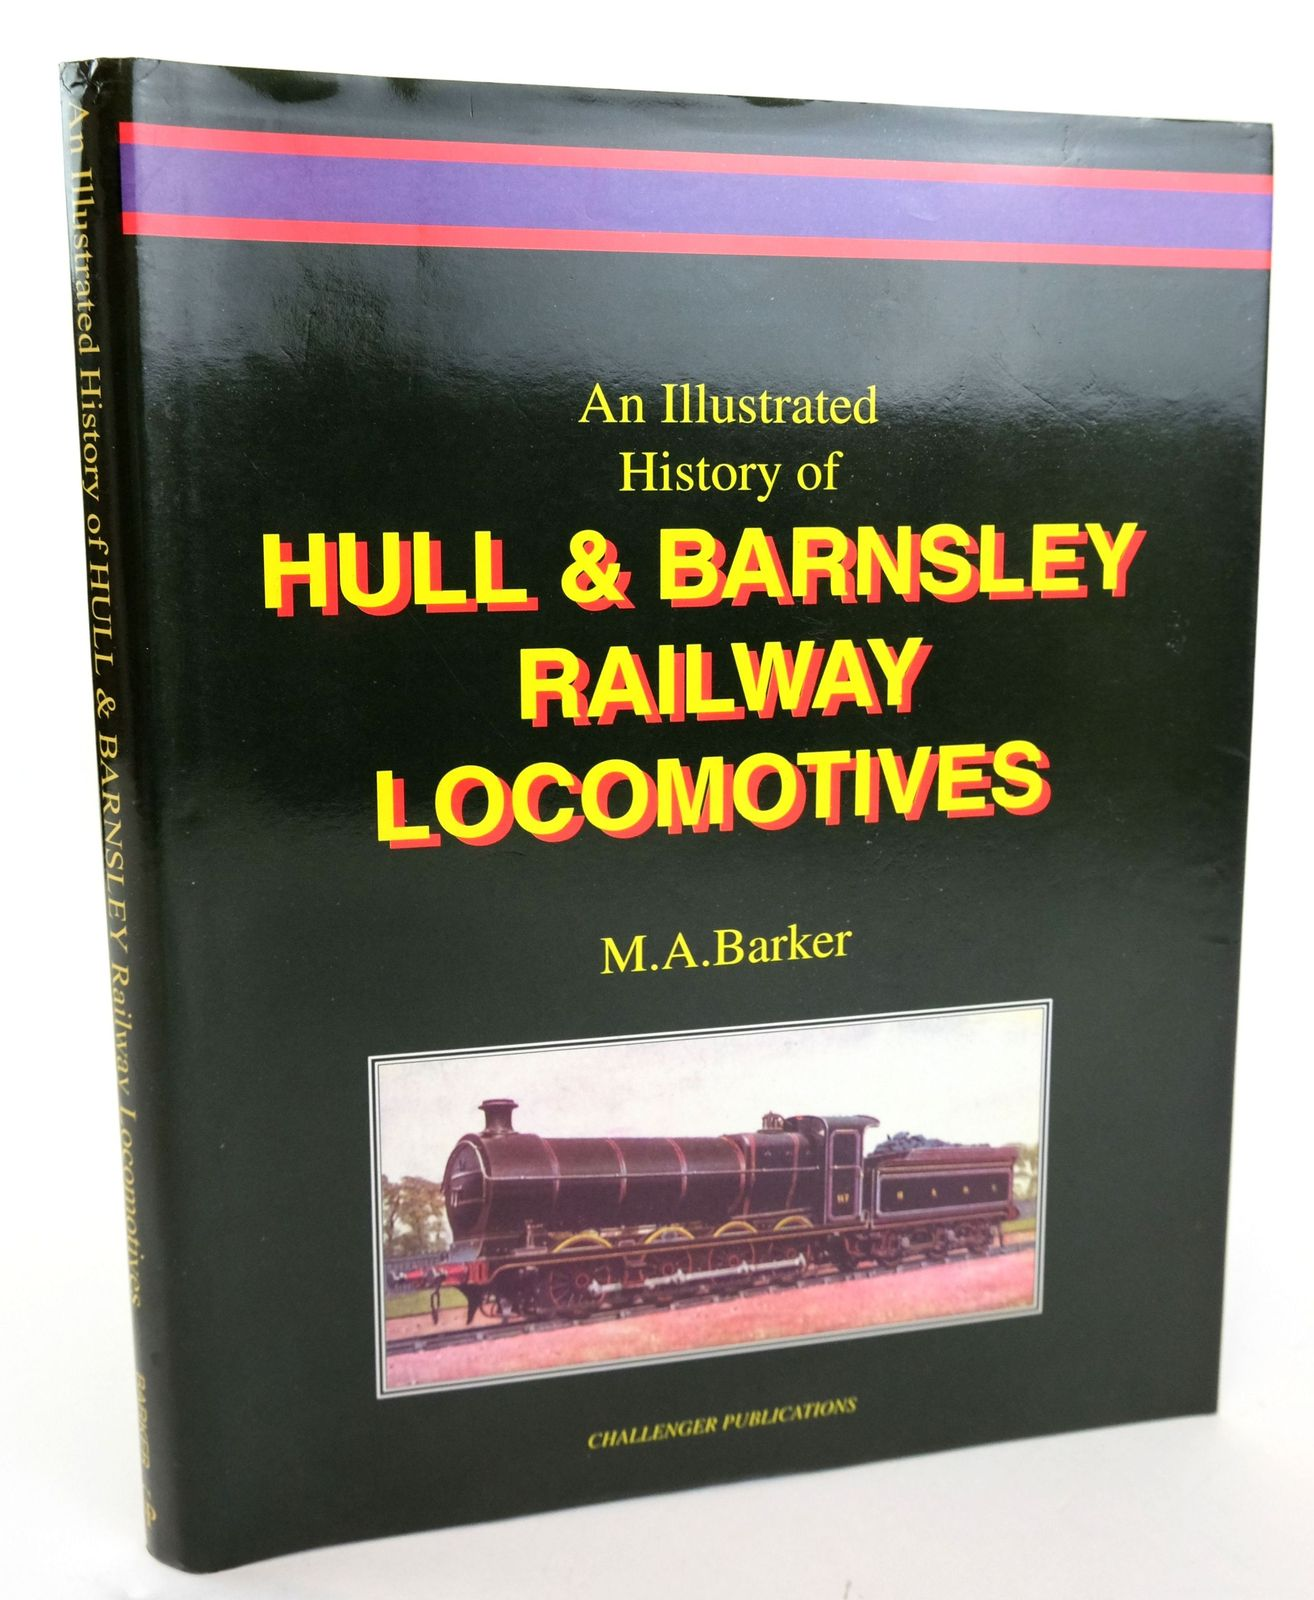 Photo of AN ILLUSTRATED HISTORY OF HULL & BARNSLEY RAILWAY LOCOMOTIVES VOLUME 1 written by Barker, Martin A. published by Challenger Publications (STOCK CODE: 1820146)  for sale by Stella & Rose's Books